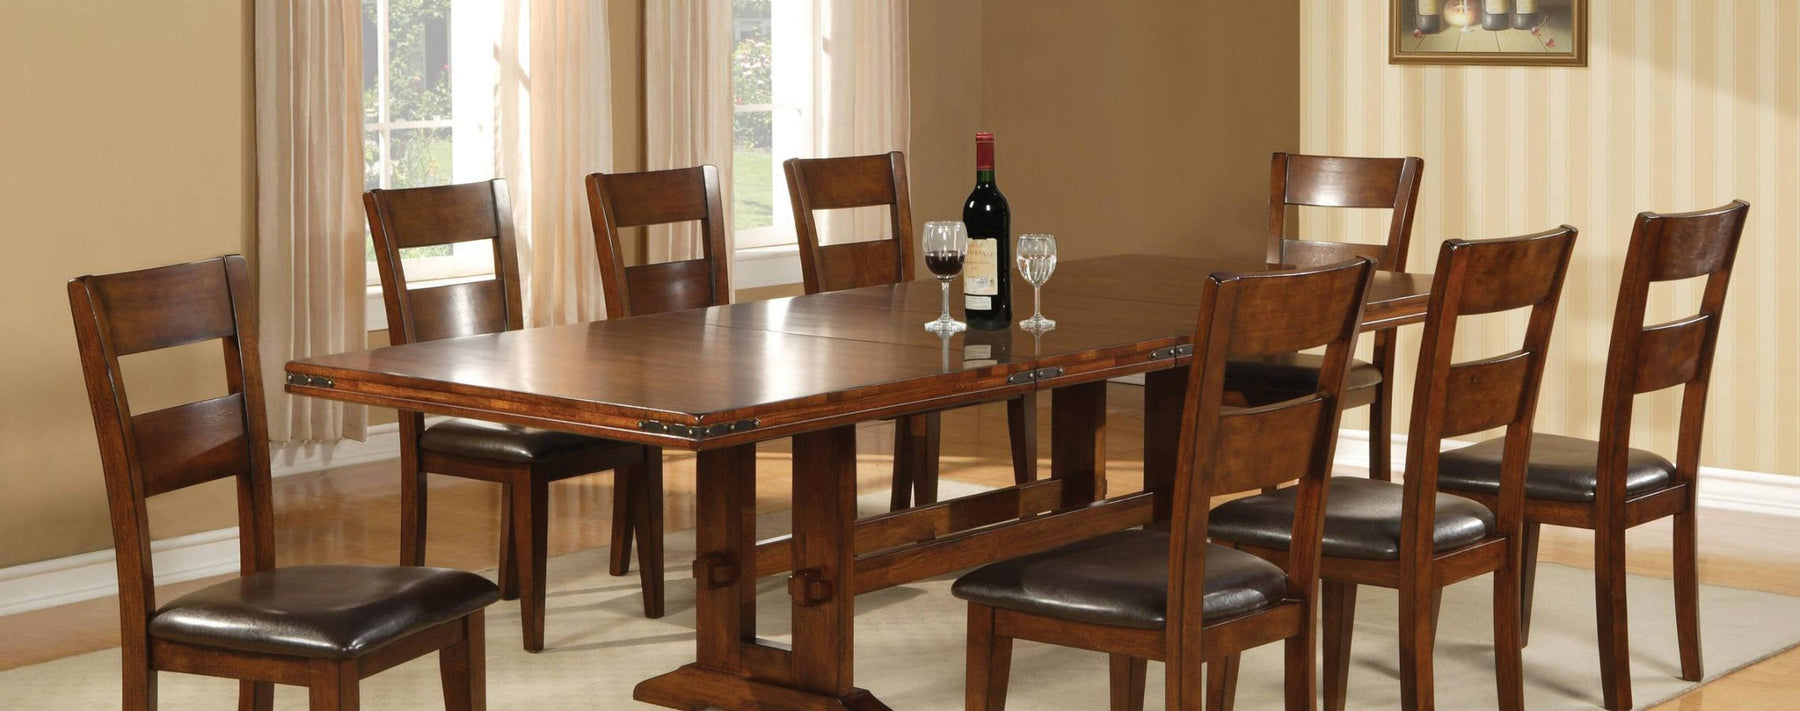 Hayward Dining Table